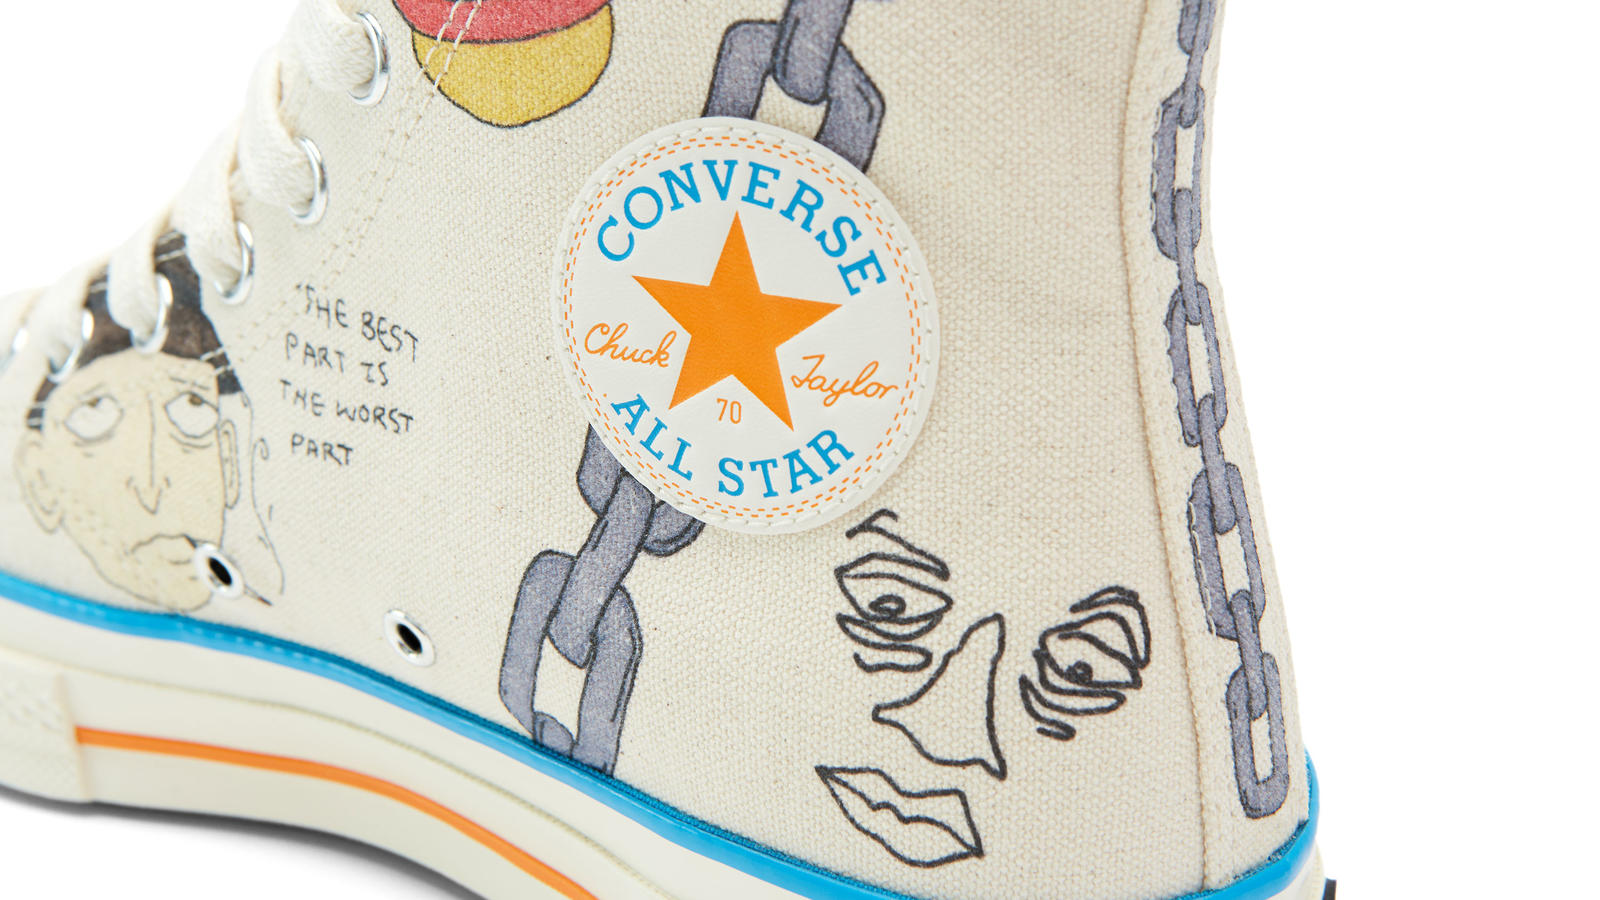 Converse 22383 Fl Artist Series Pdp Images 054 1